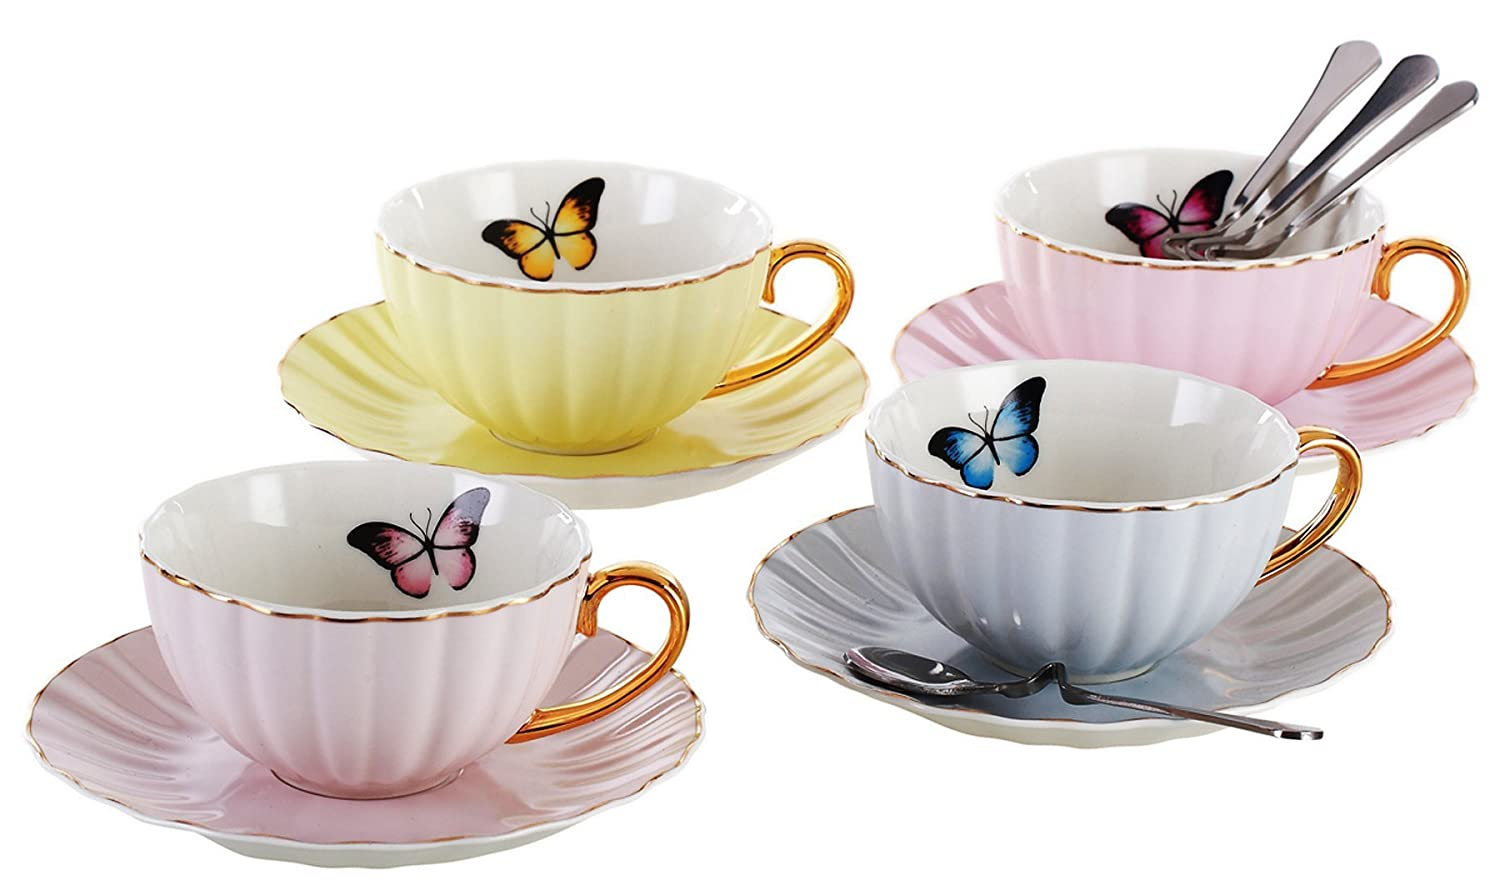 Jusalpha Elegant Tea Cup and Saucer Set-Coffee Cup Set with Saucer and Spoon FD-TCS03-4COLOR SYNCHKG072301